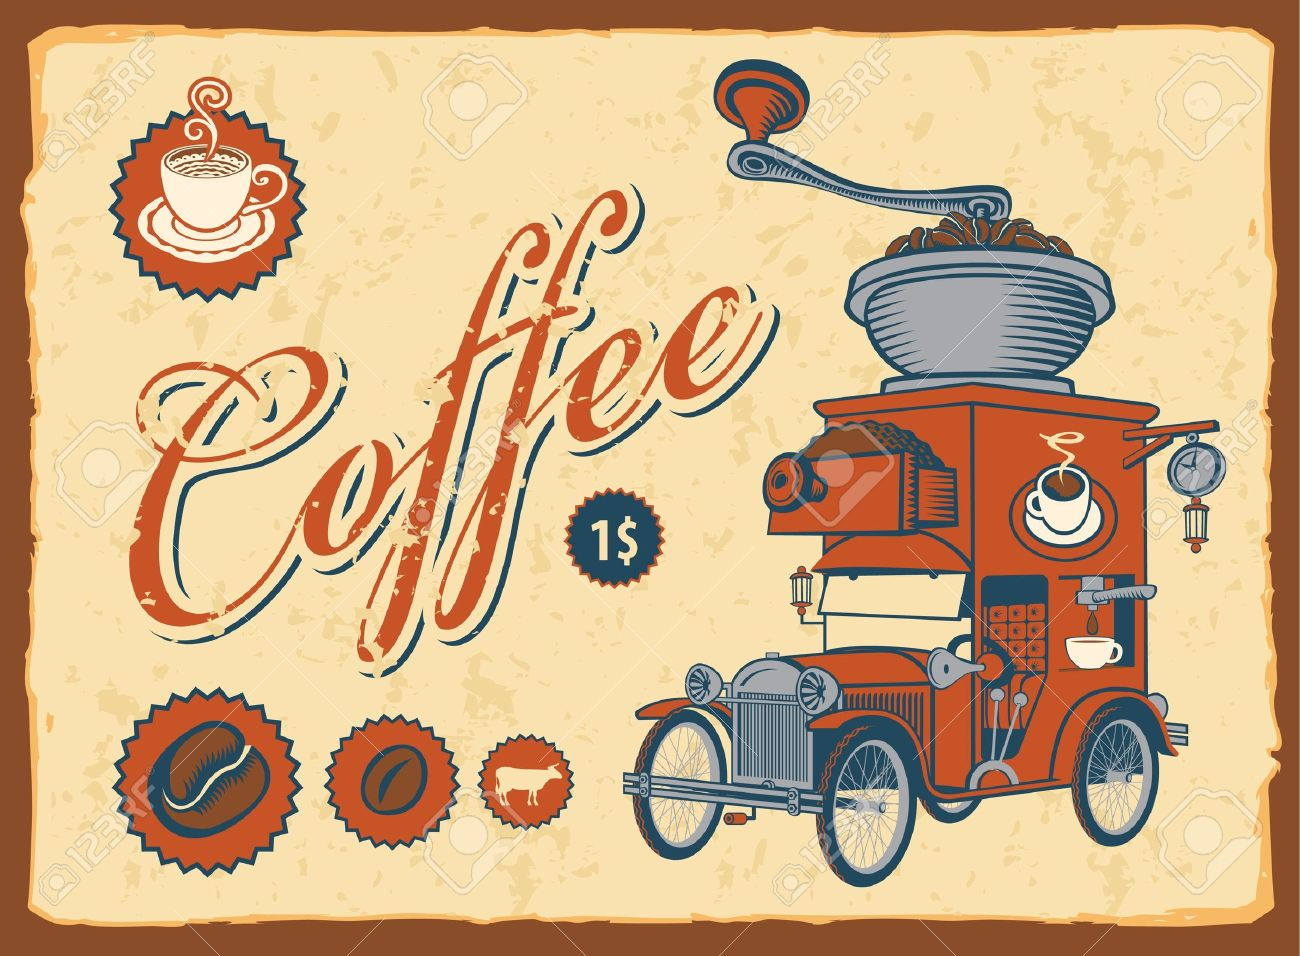 vintage car with coffee grinder on roof Stock Vector - 13773095